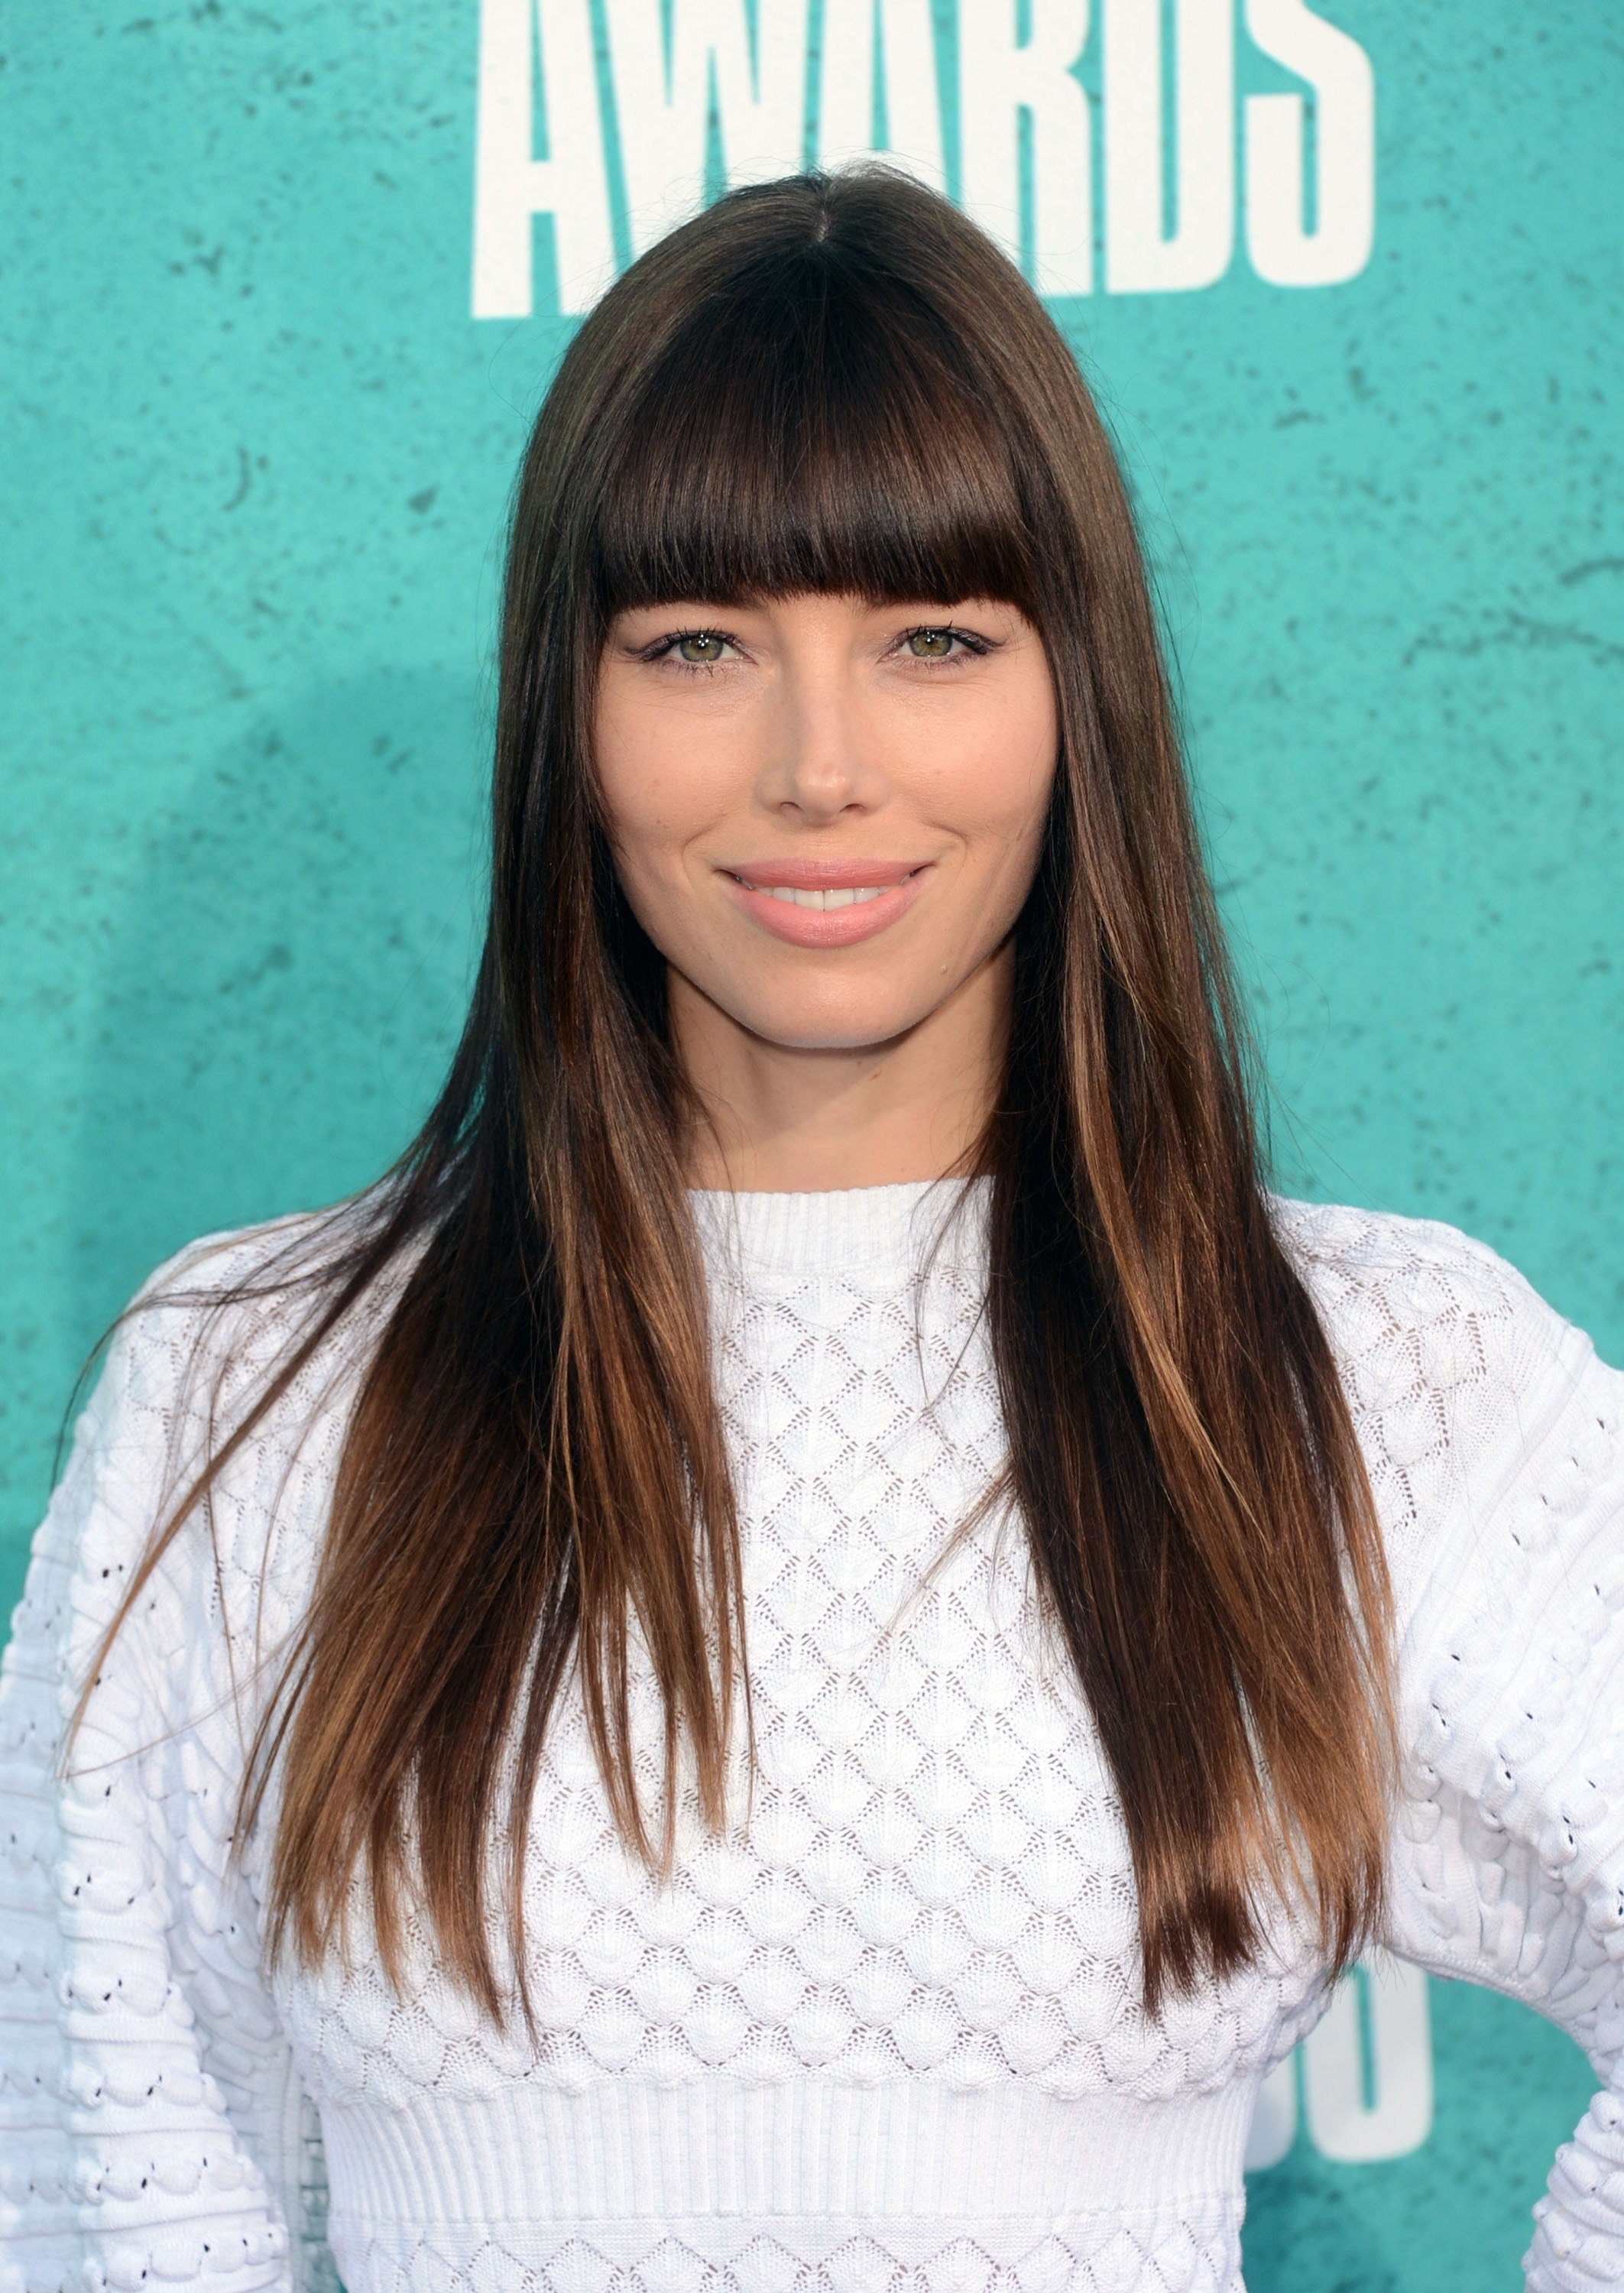 The Best 17 Hairstyles With Bangs — Photos Of Haircuts With Bangs Pictures